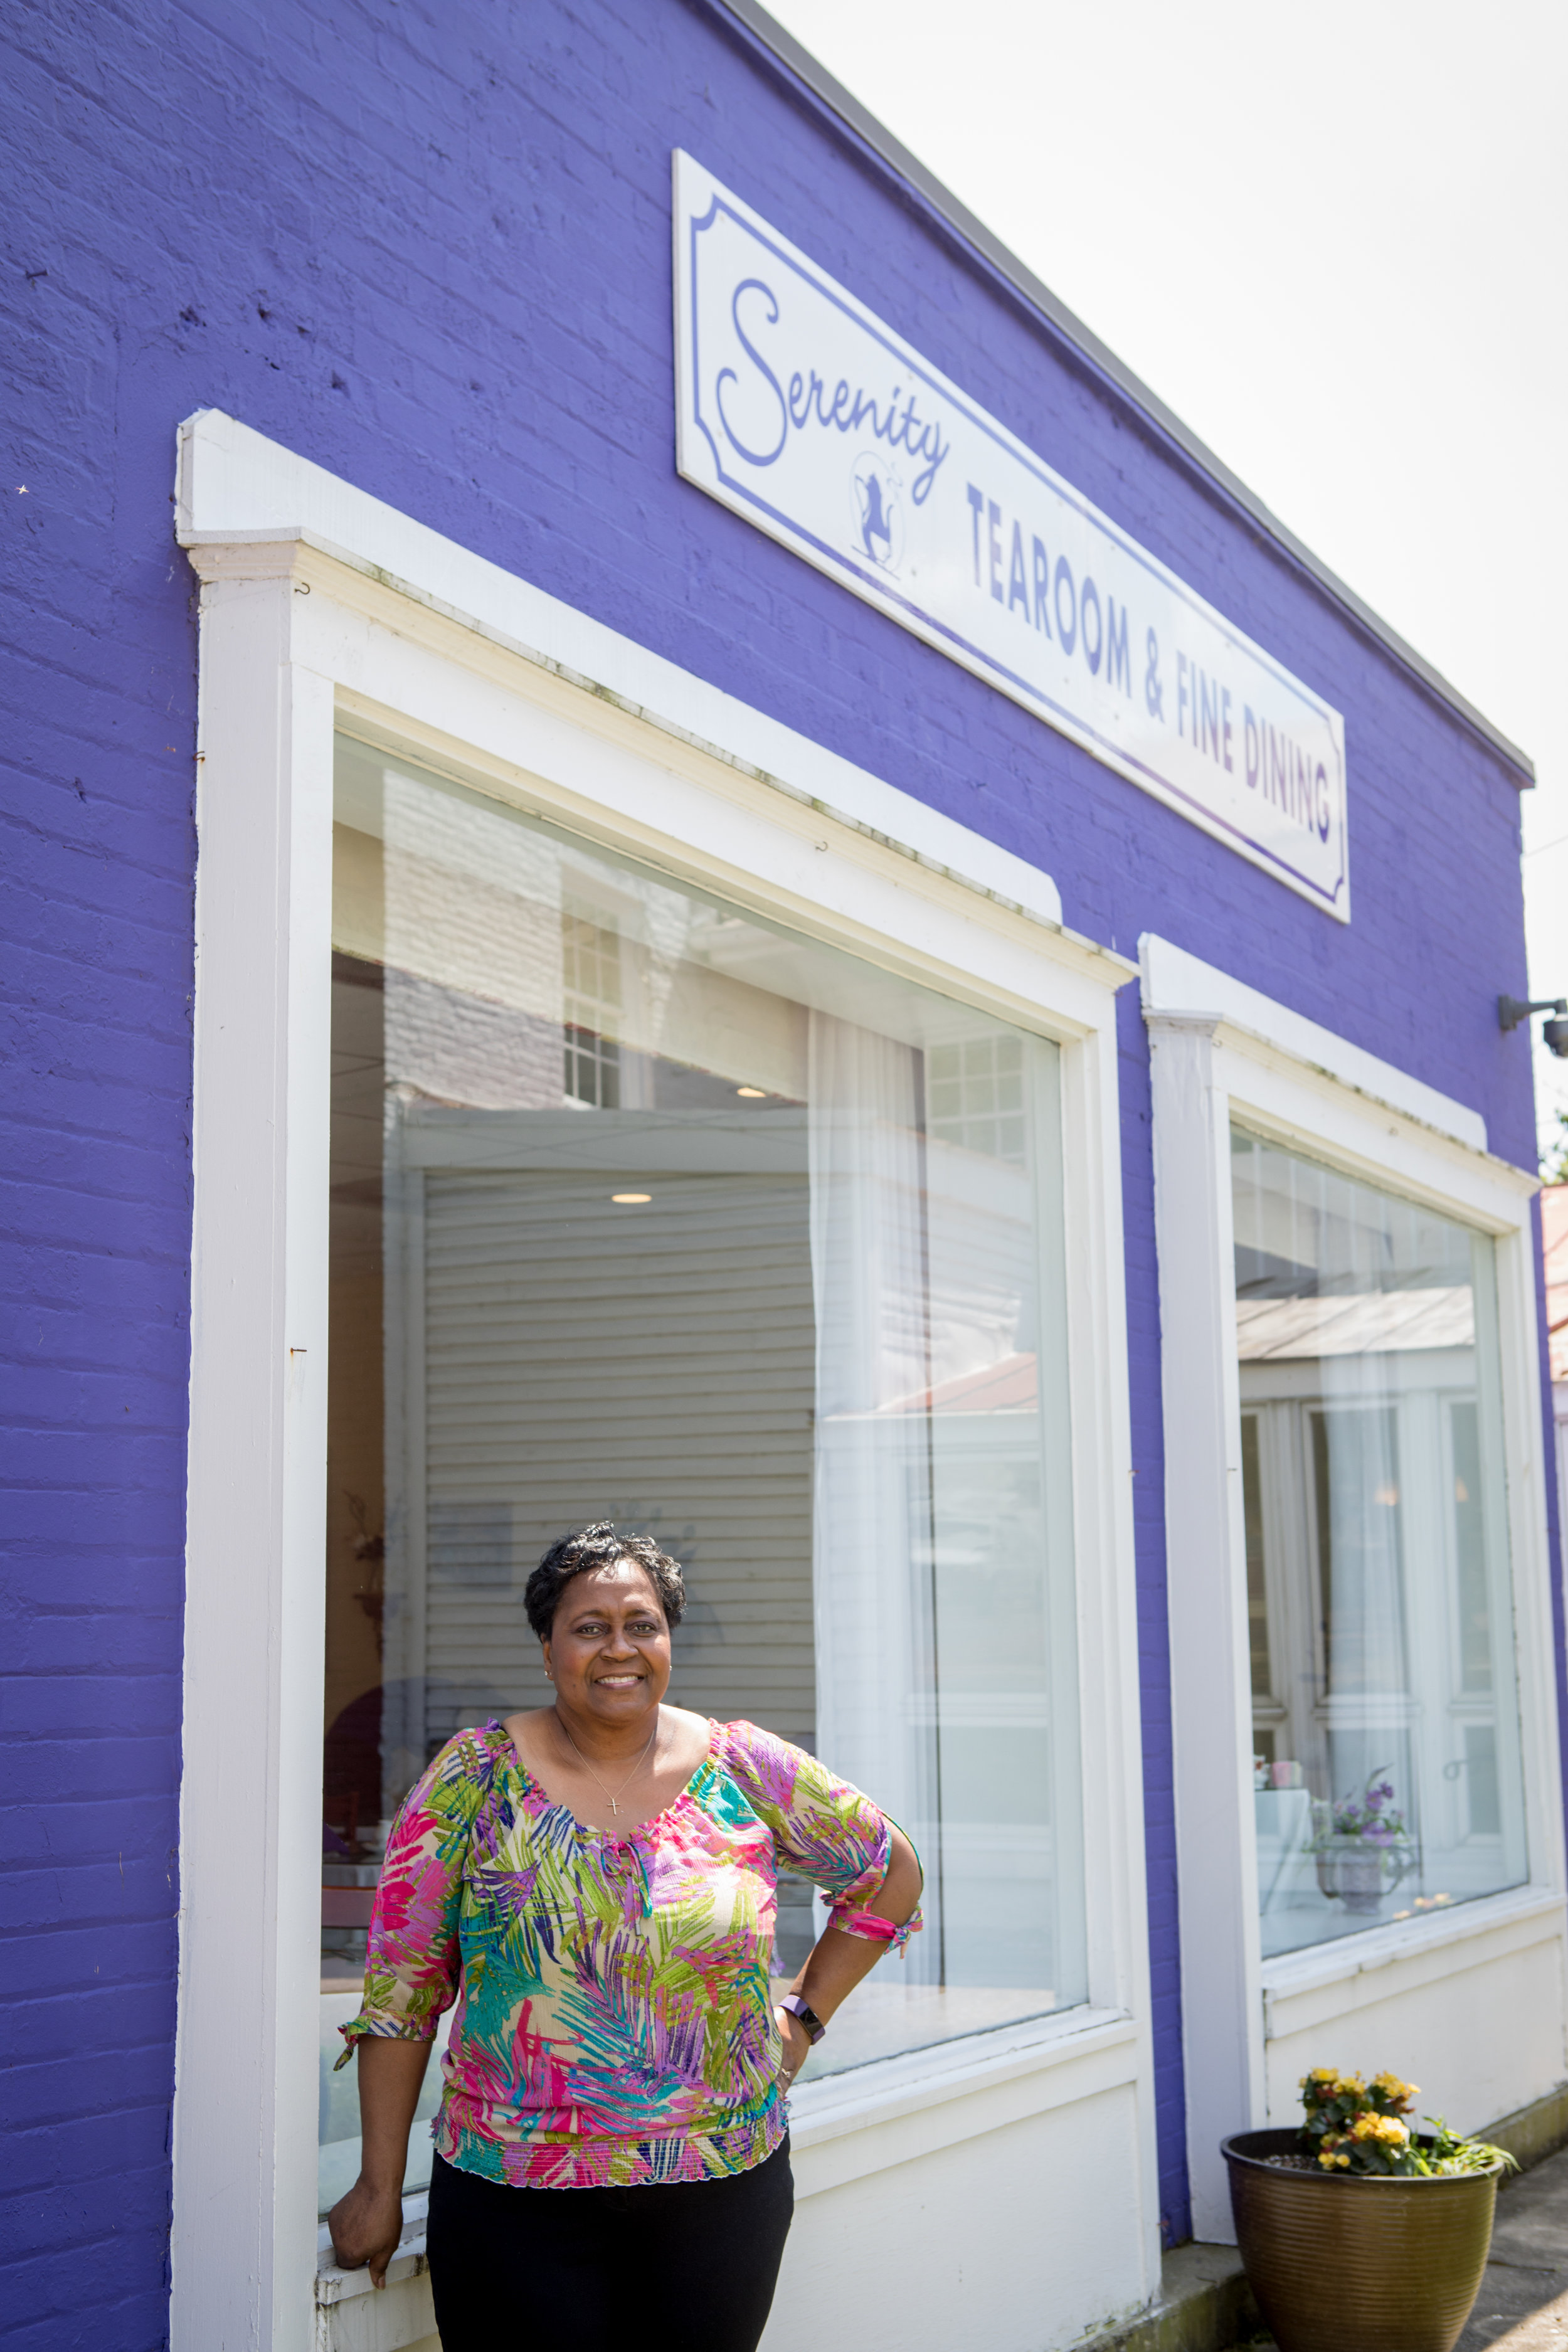 Blanch Henry shows off the purple exterior paint on Serenity Tearoom & Fine Dining.